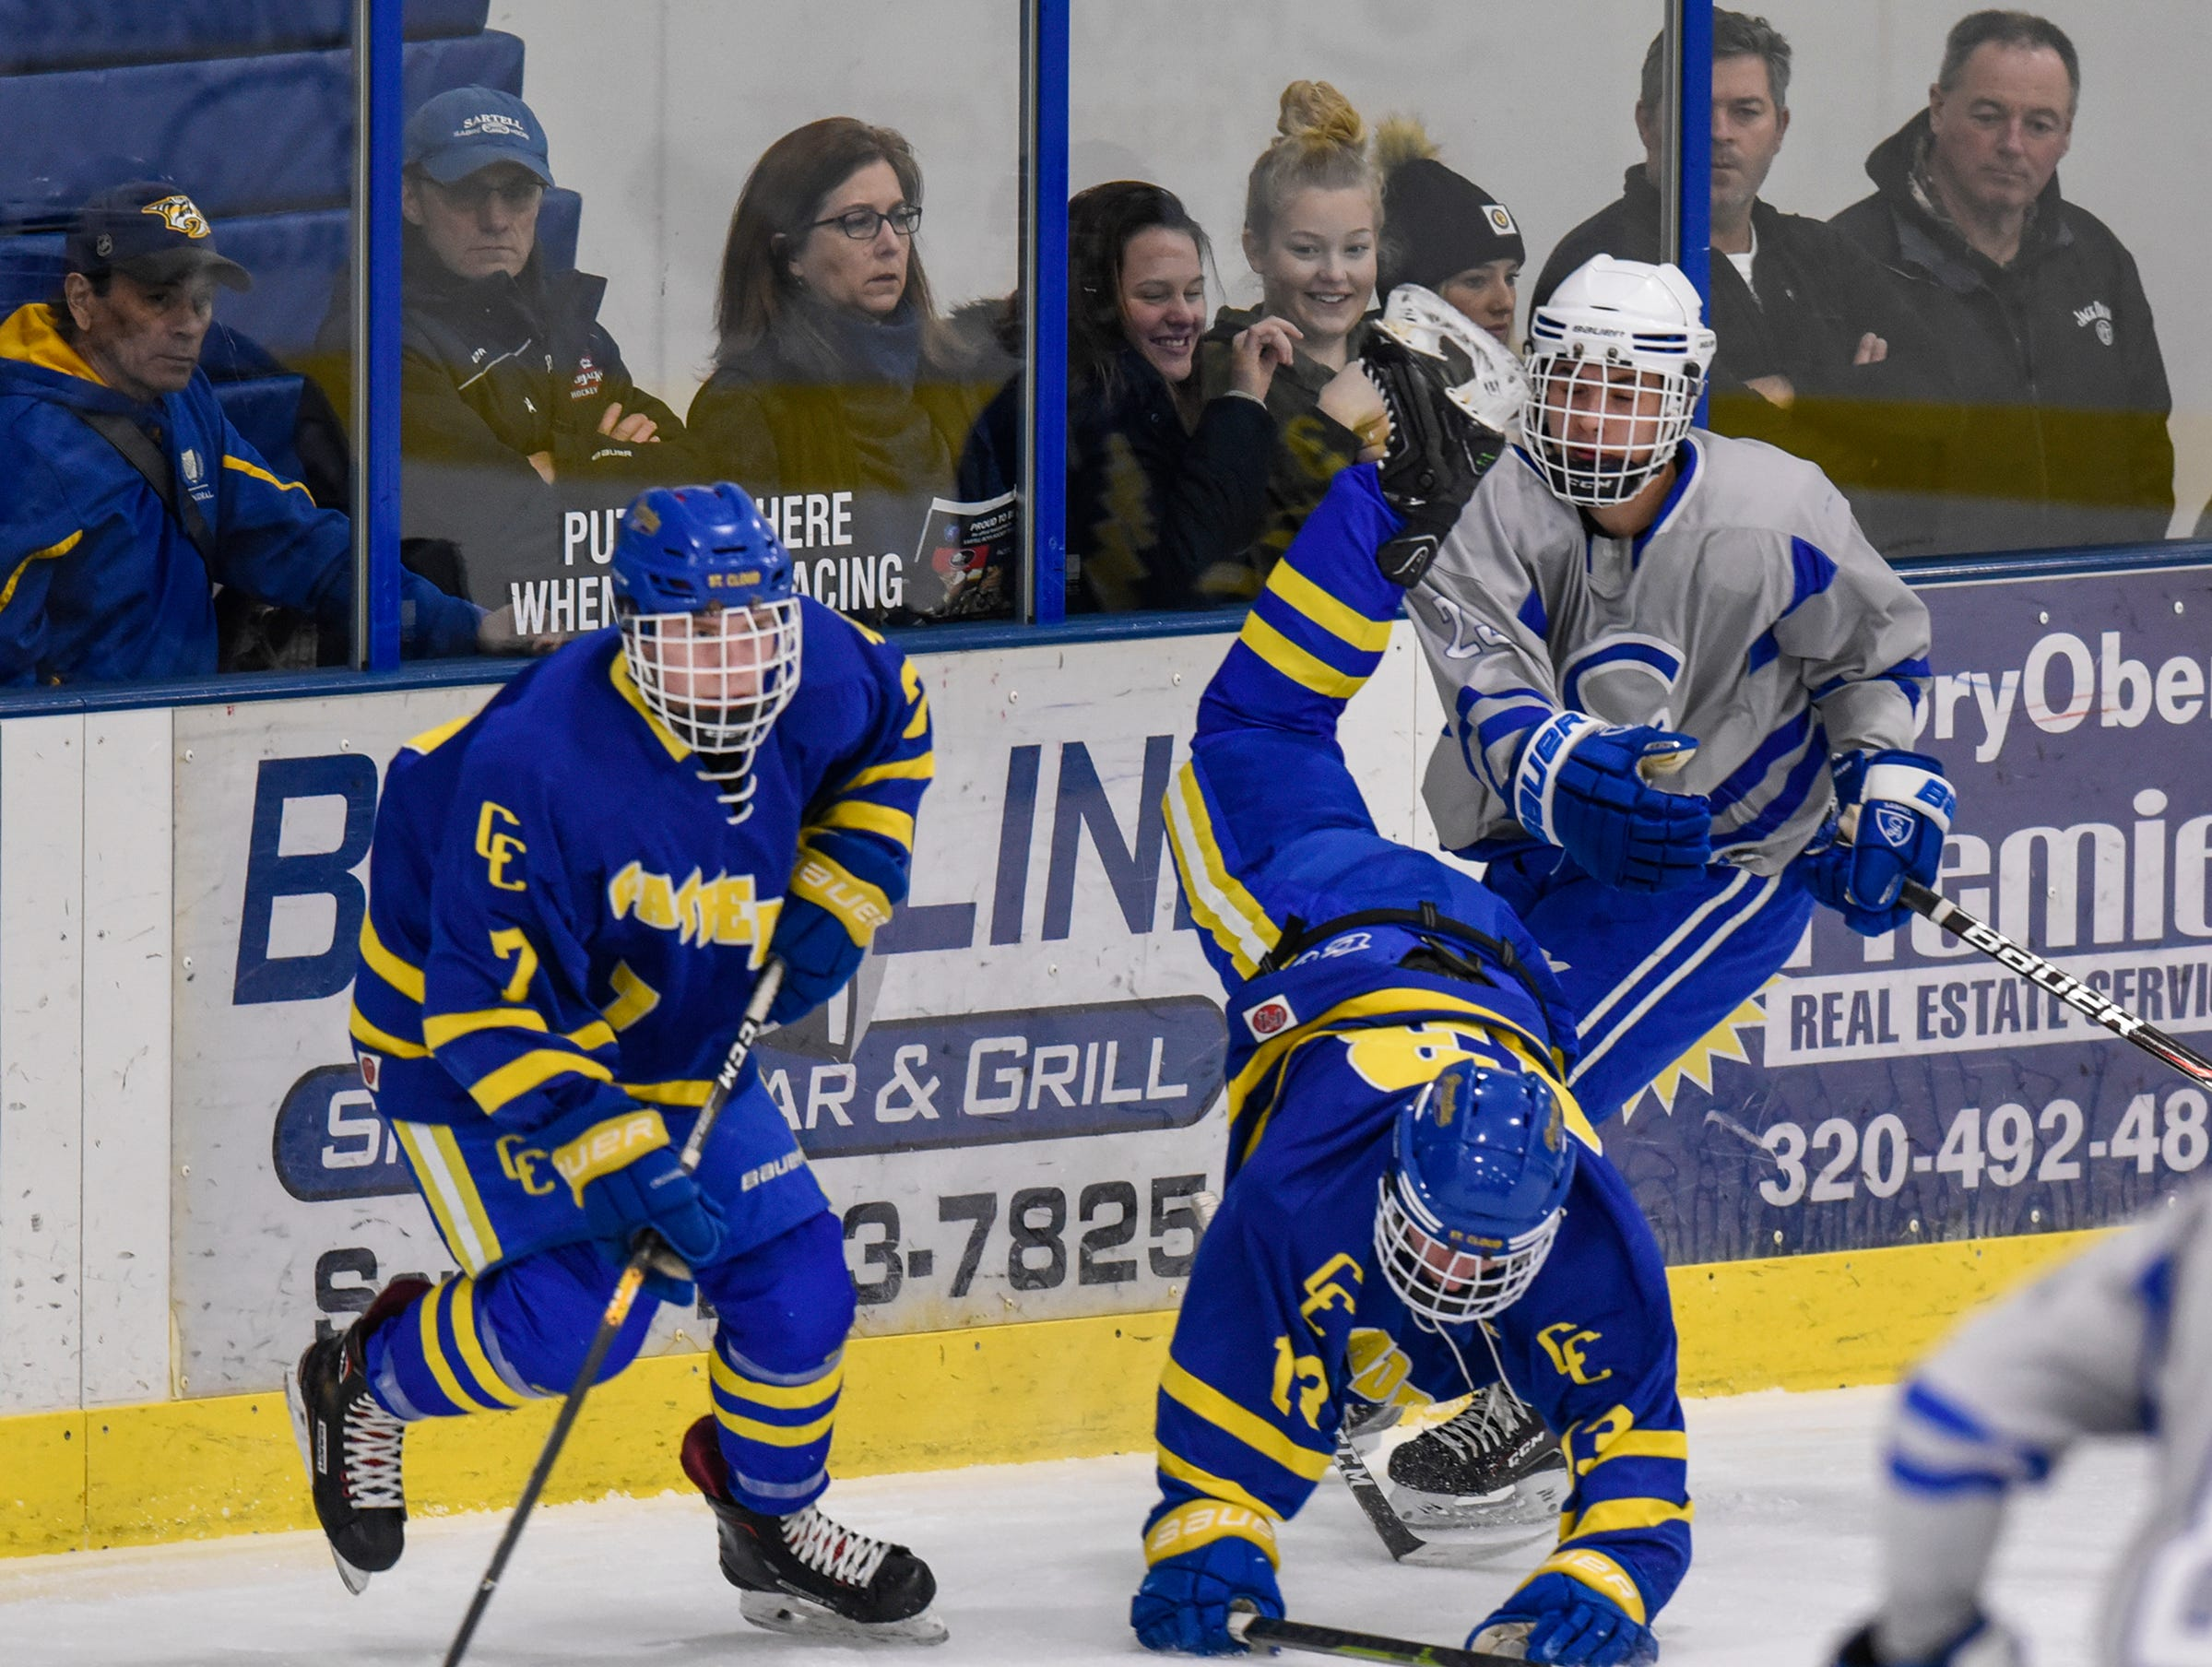 Cathedral's Nate Martin gets control of the puck during the Thursday, Jan. 10, game at Bernicks Arena in Sartell.